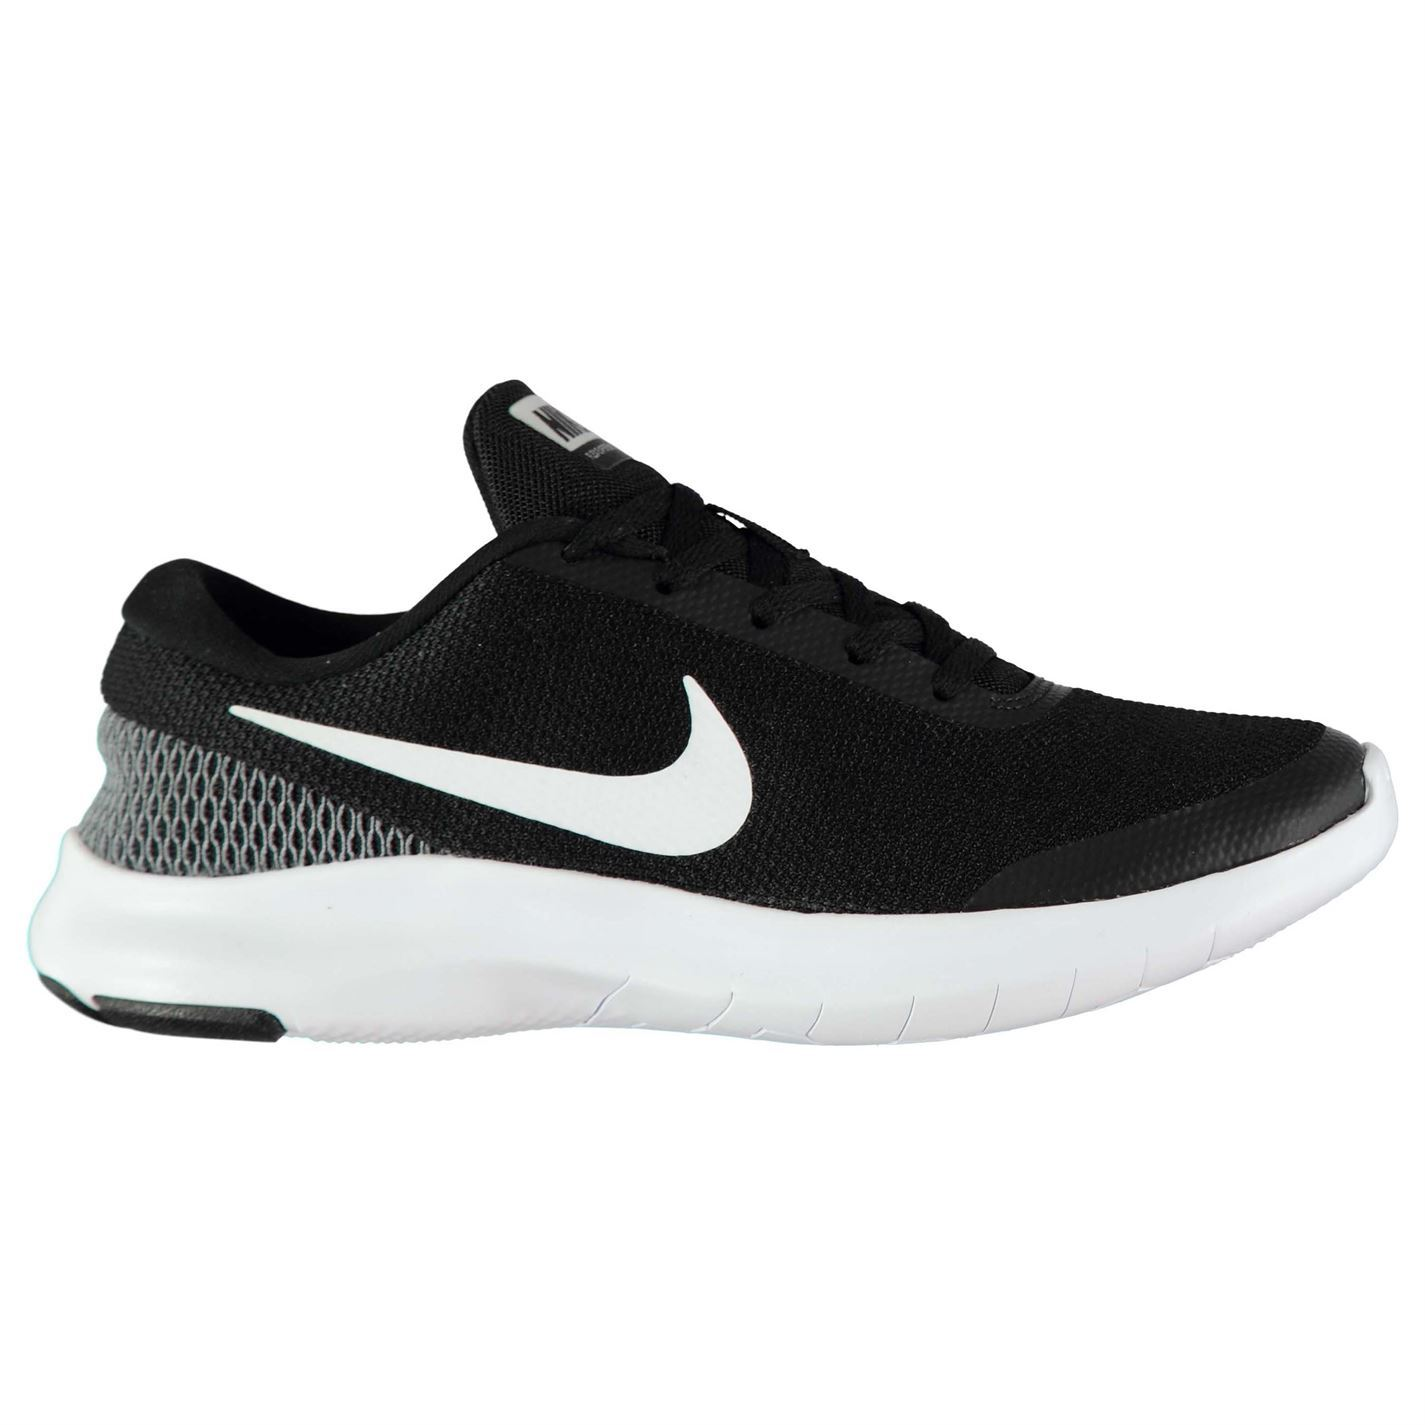 low price many fashionable new collection Nike Flex Experience 7 Chaussures De Course Femme Noir/Blanc Run ...